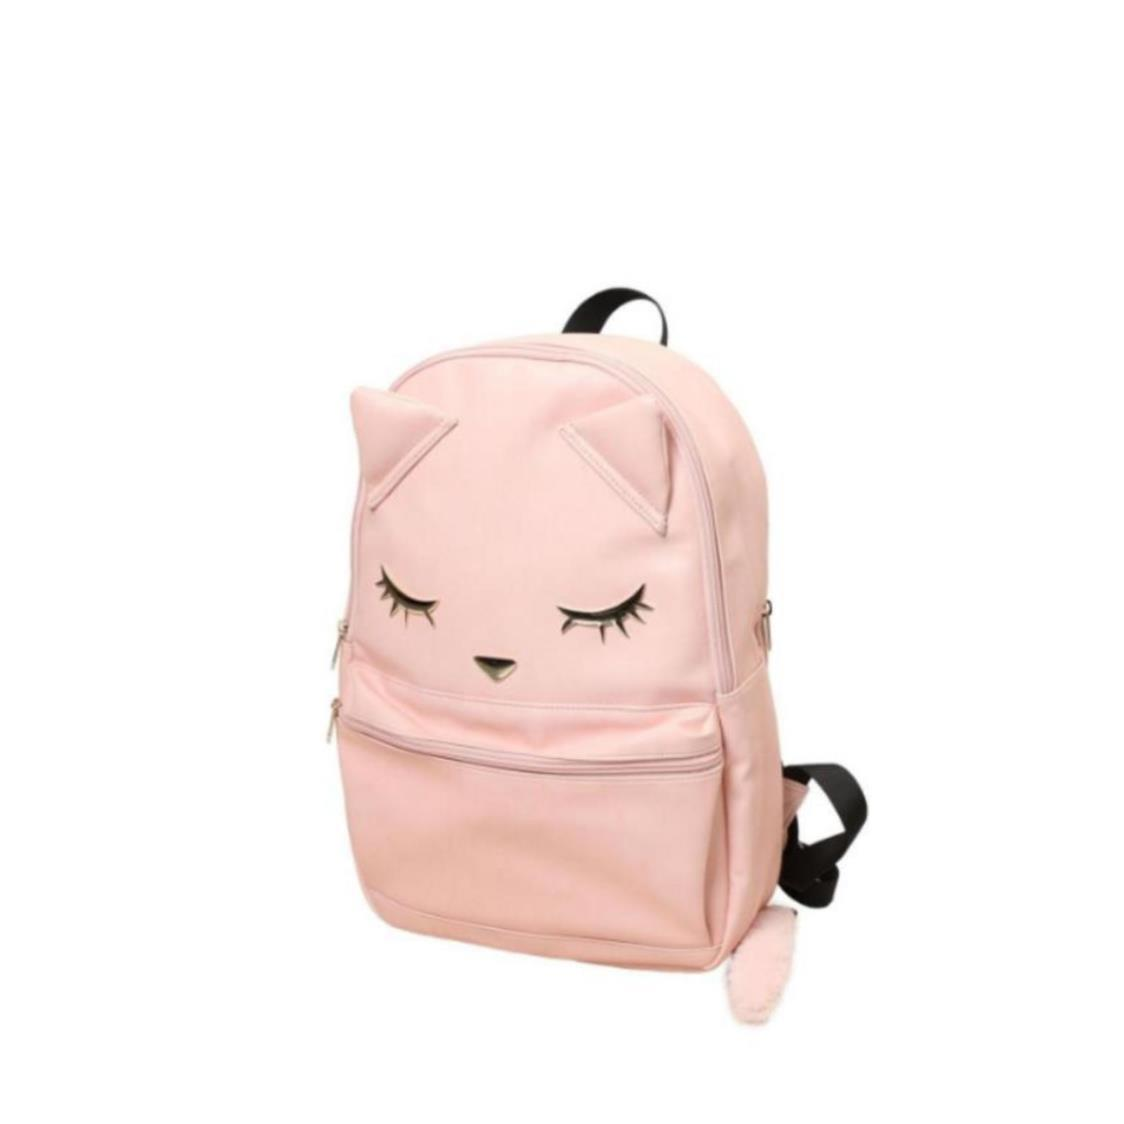 Backpack with Tail Pink